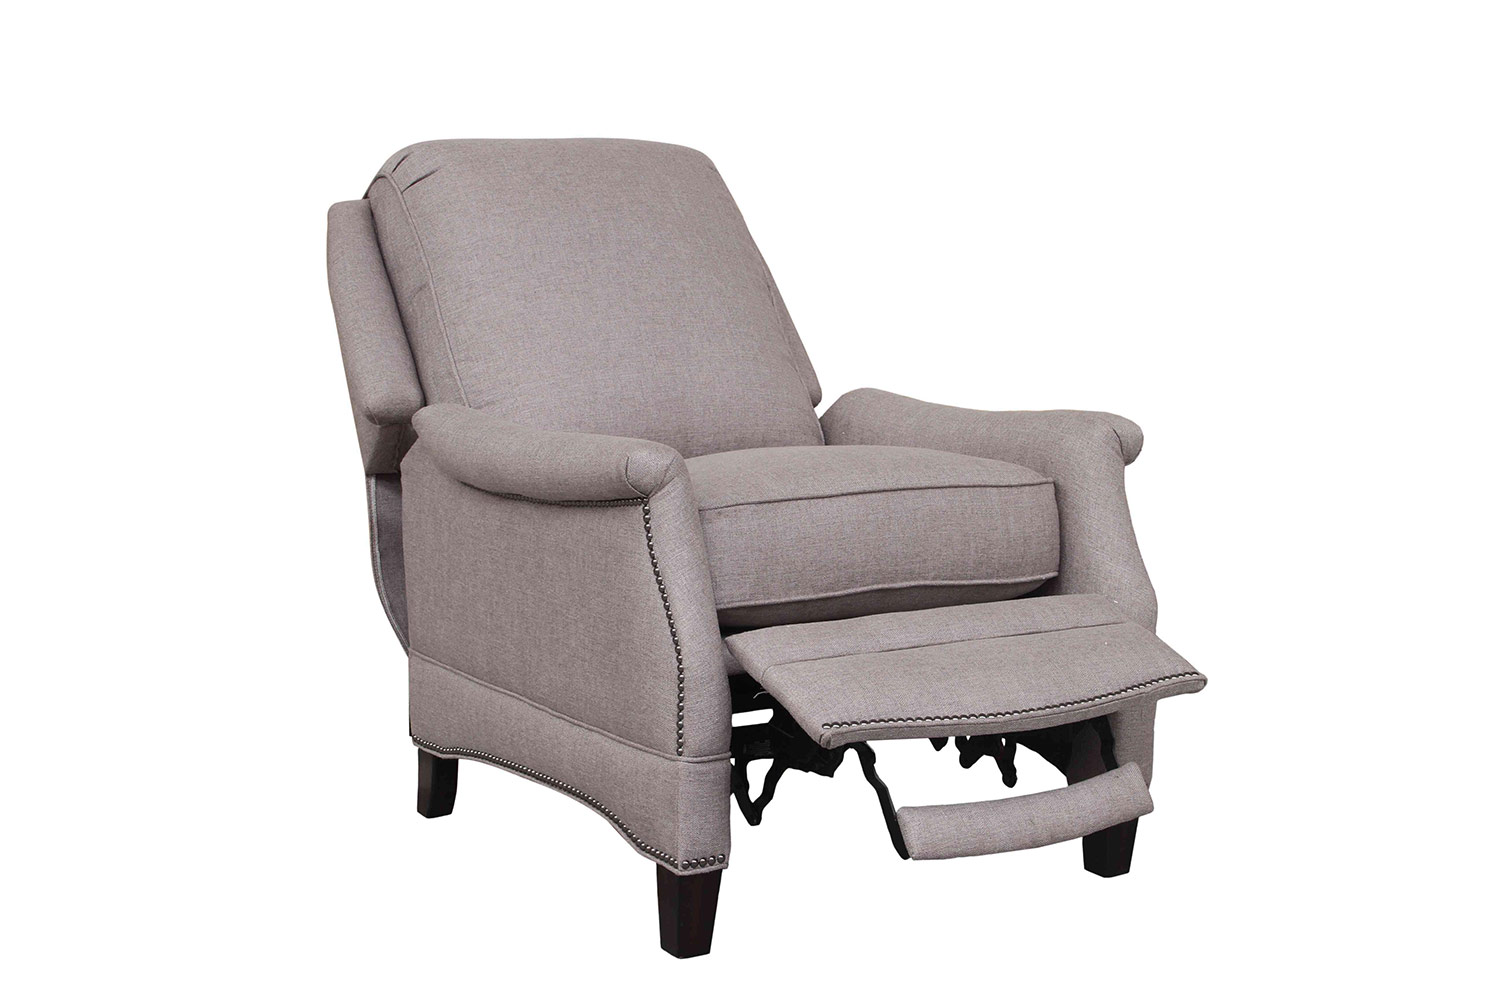 Barcalounger Ashebrooke Recliner Chair - Z-Hory taupe fabric